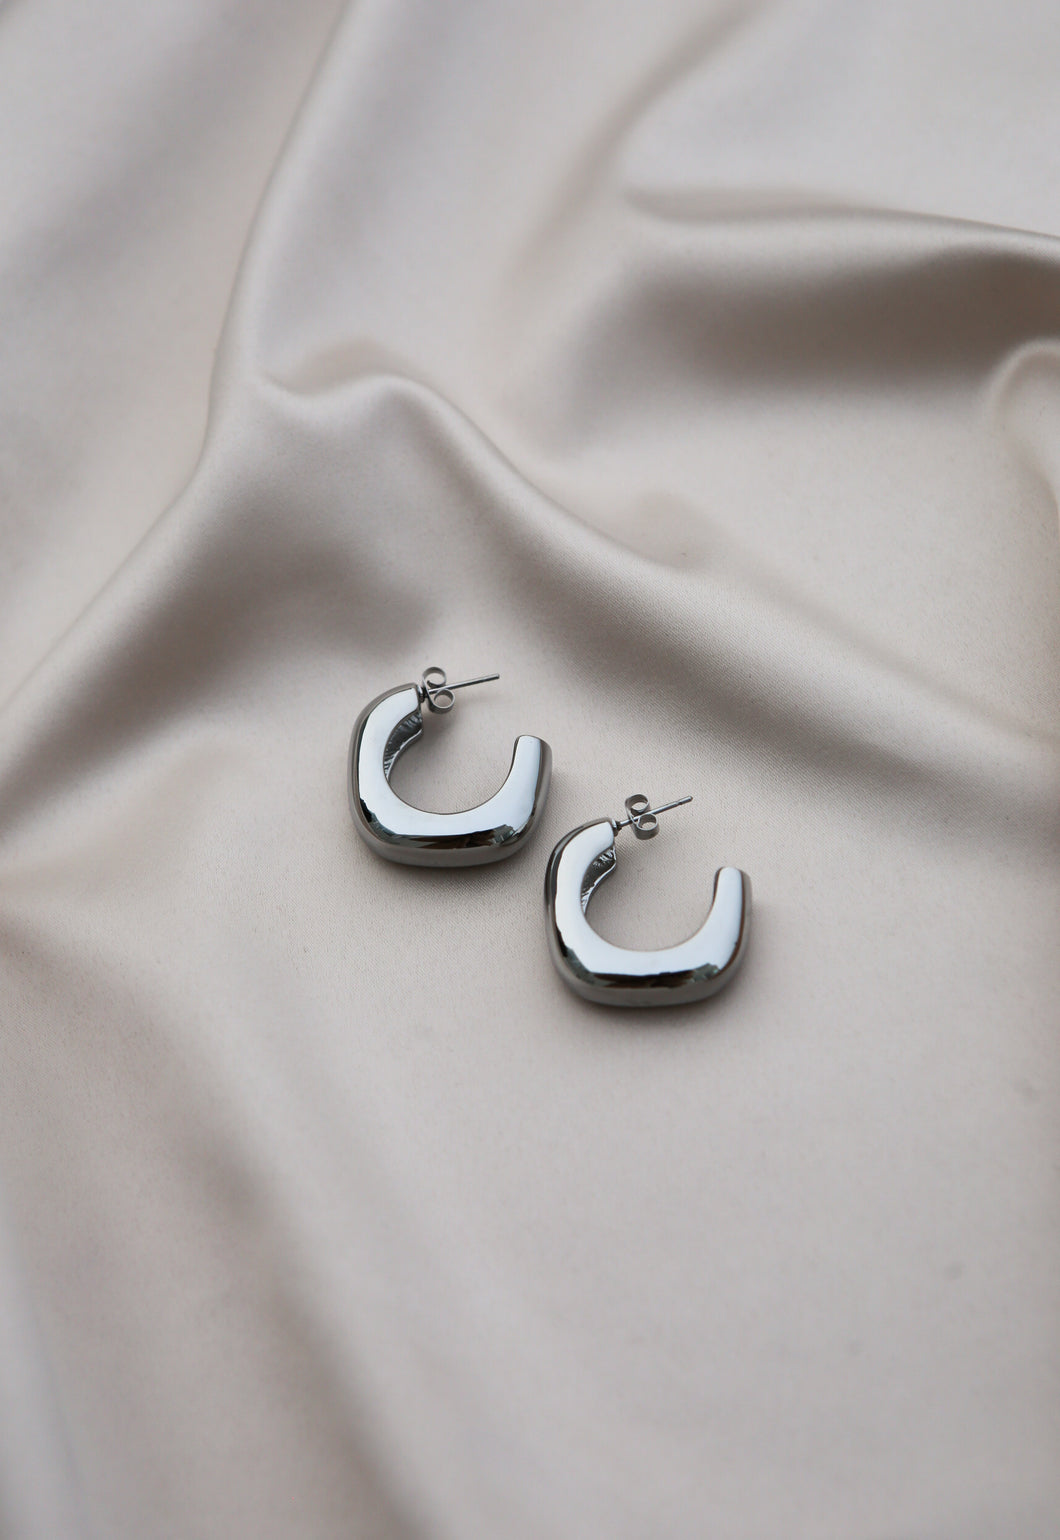 Chane earrings by Fanney Ingvars